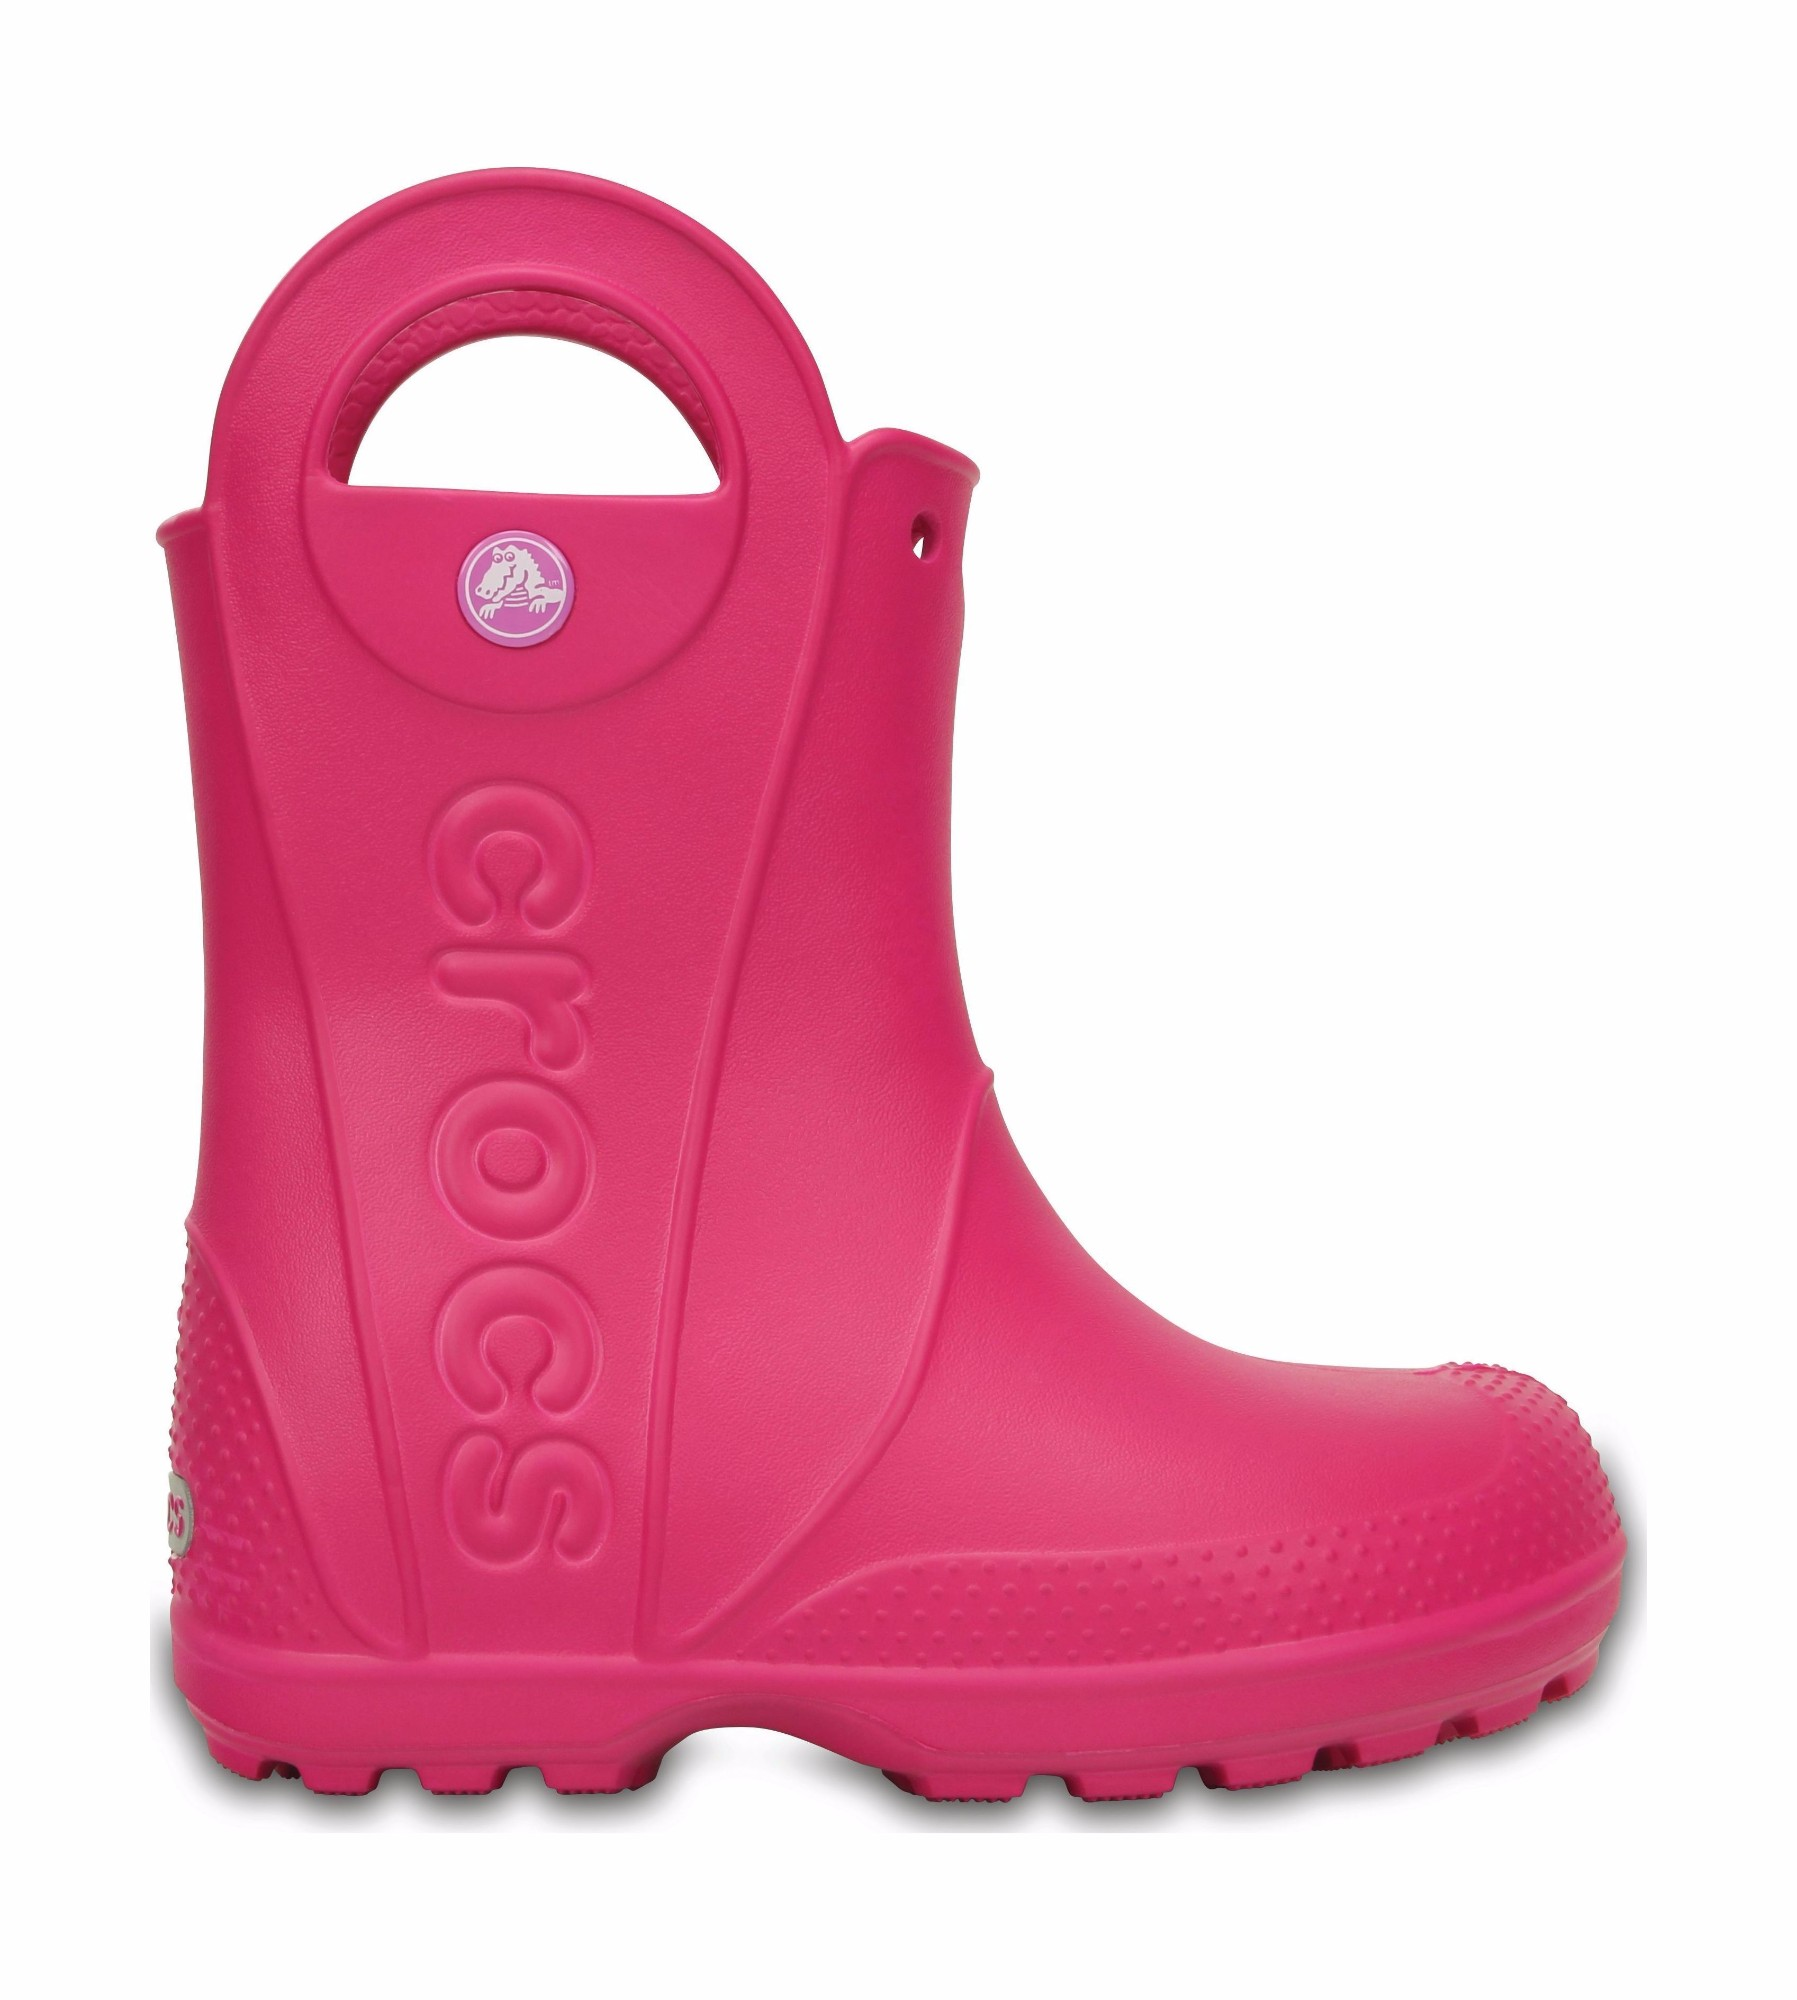 Crocs™ Kids' Handle It Rain Boot Candy Pink 29